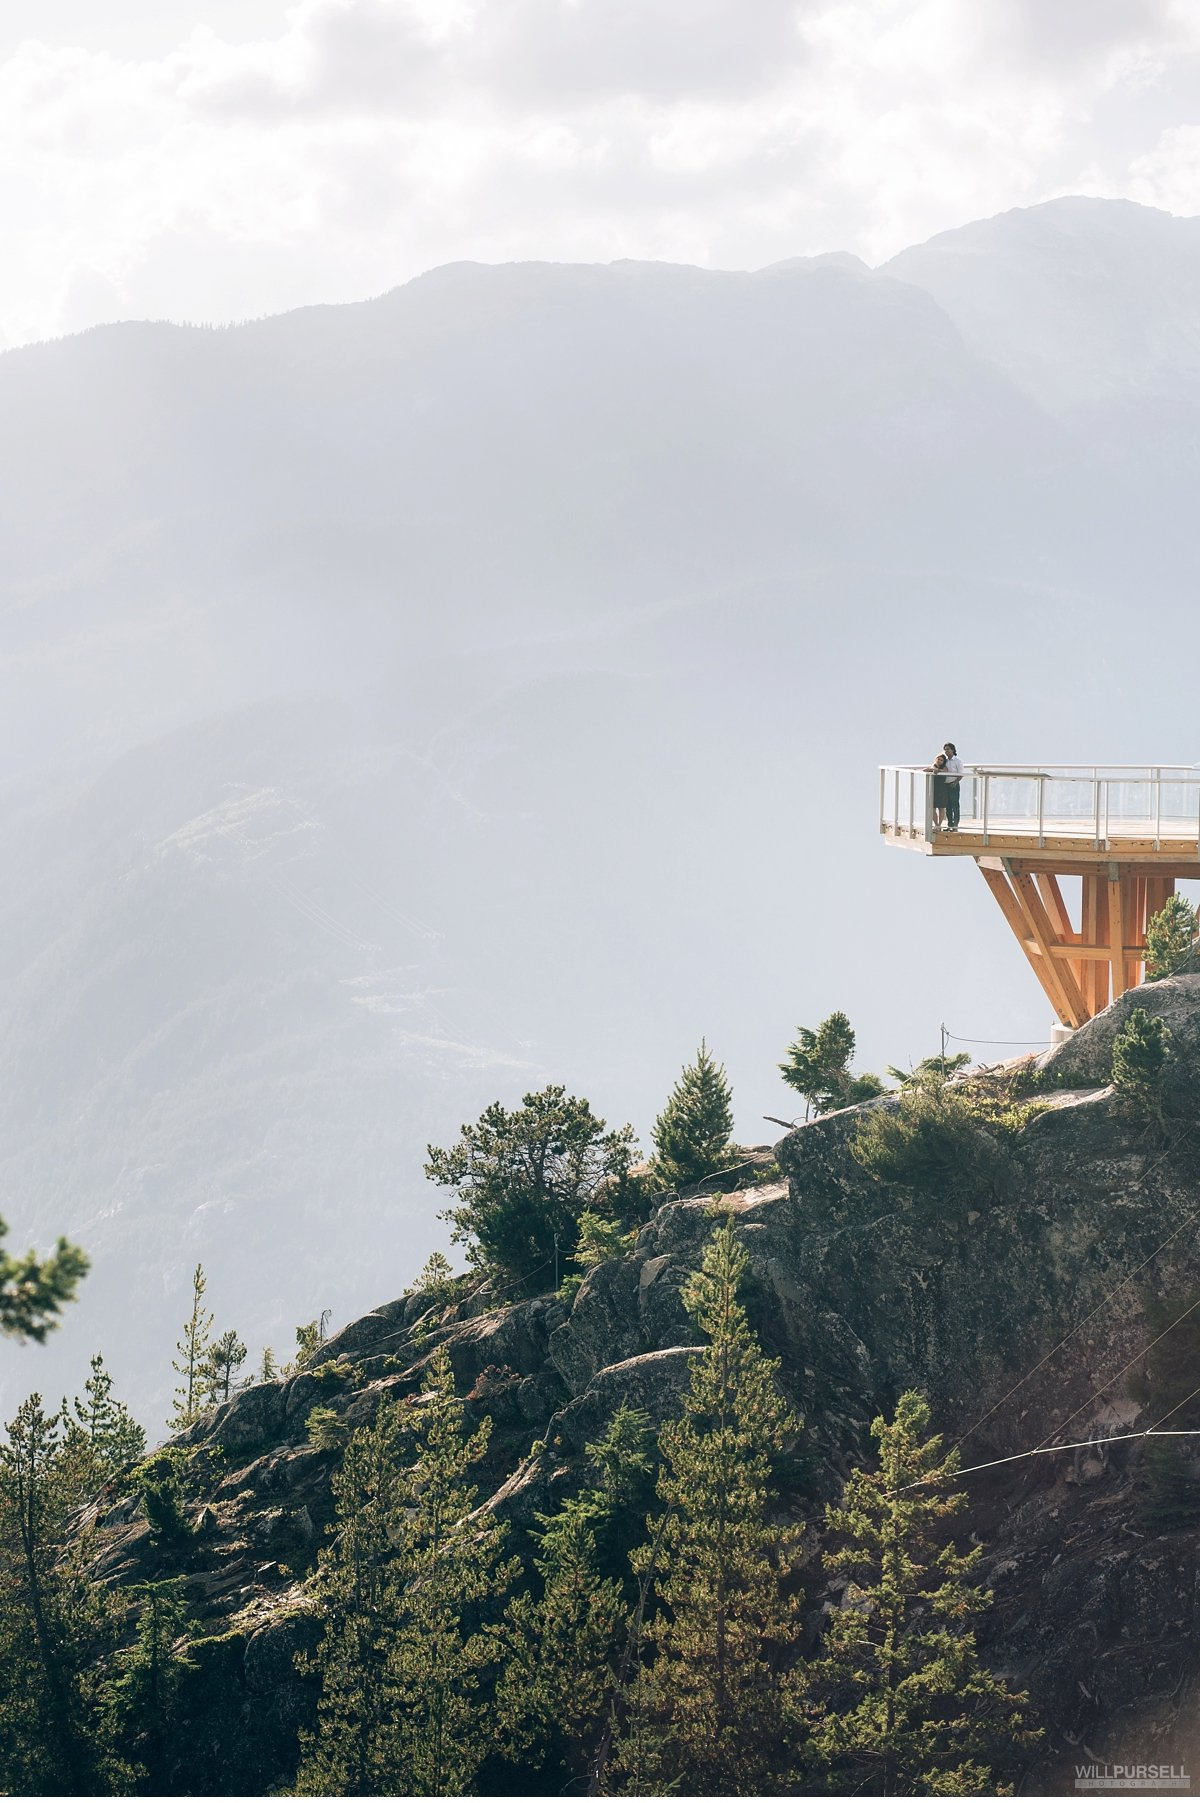 sea to sky gondola platform